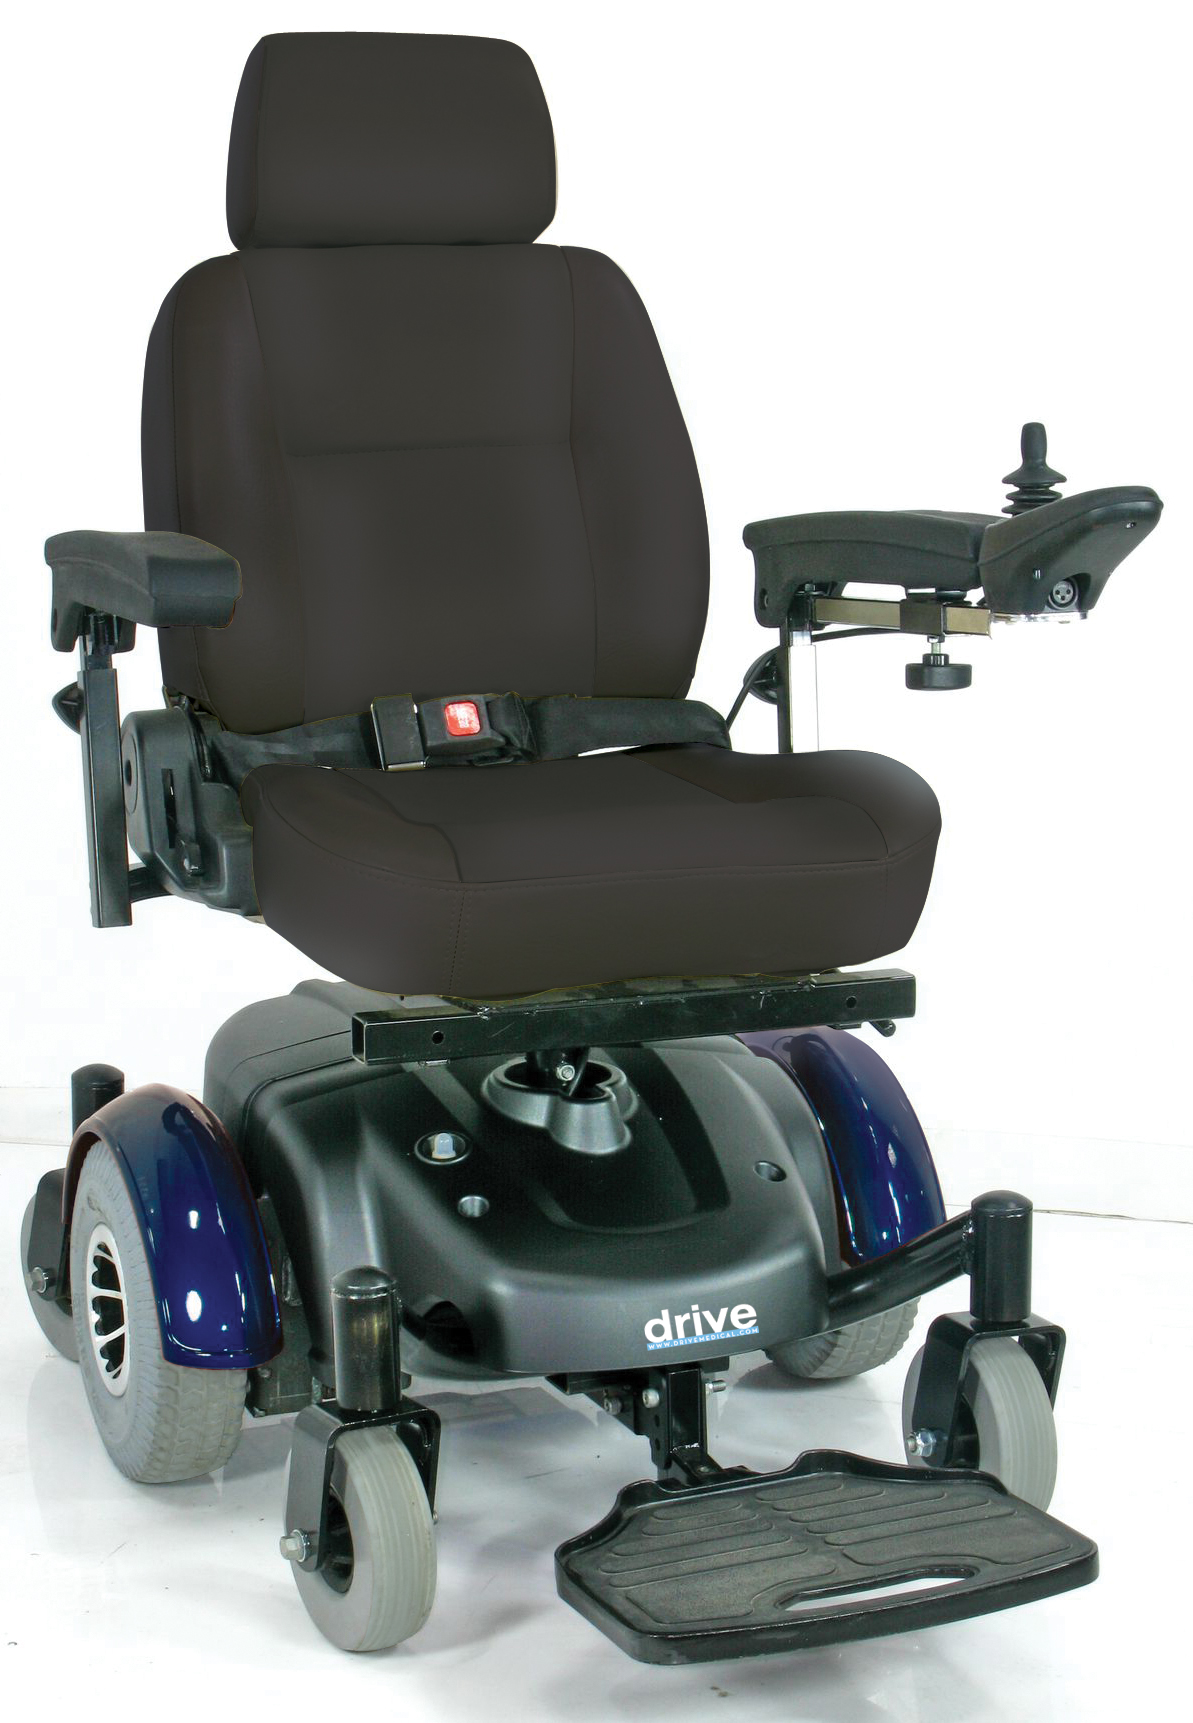 "Image EC Mid Wheel Drive Power Wheelchair 20"" - 2800ecbu-rcl-20-powerchair2800ecbu-rcla_1.jpg"